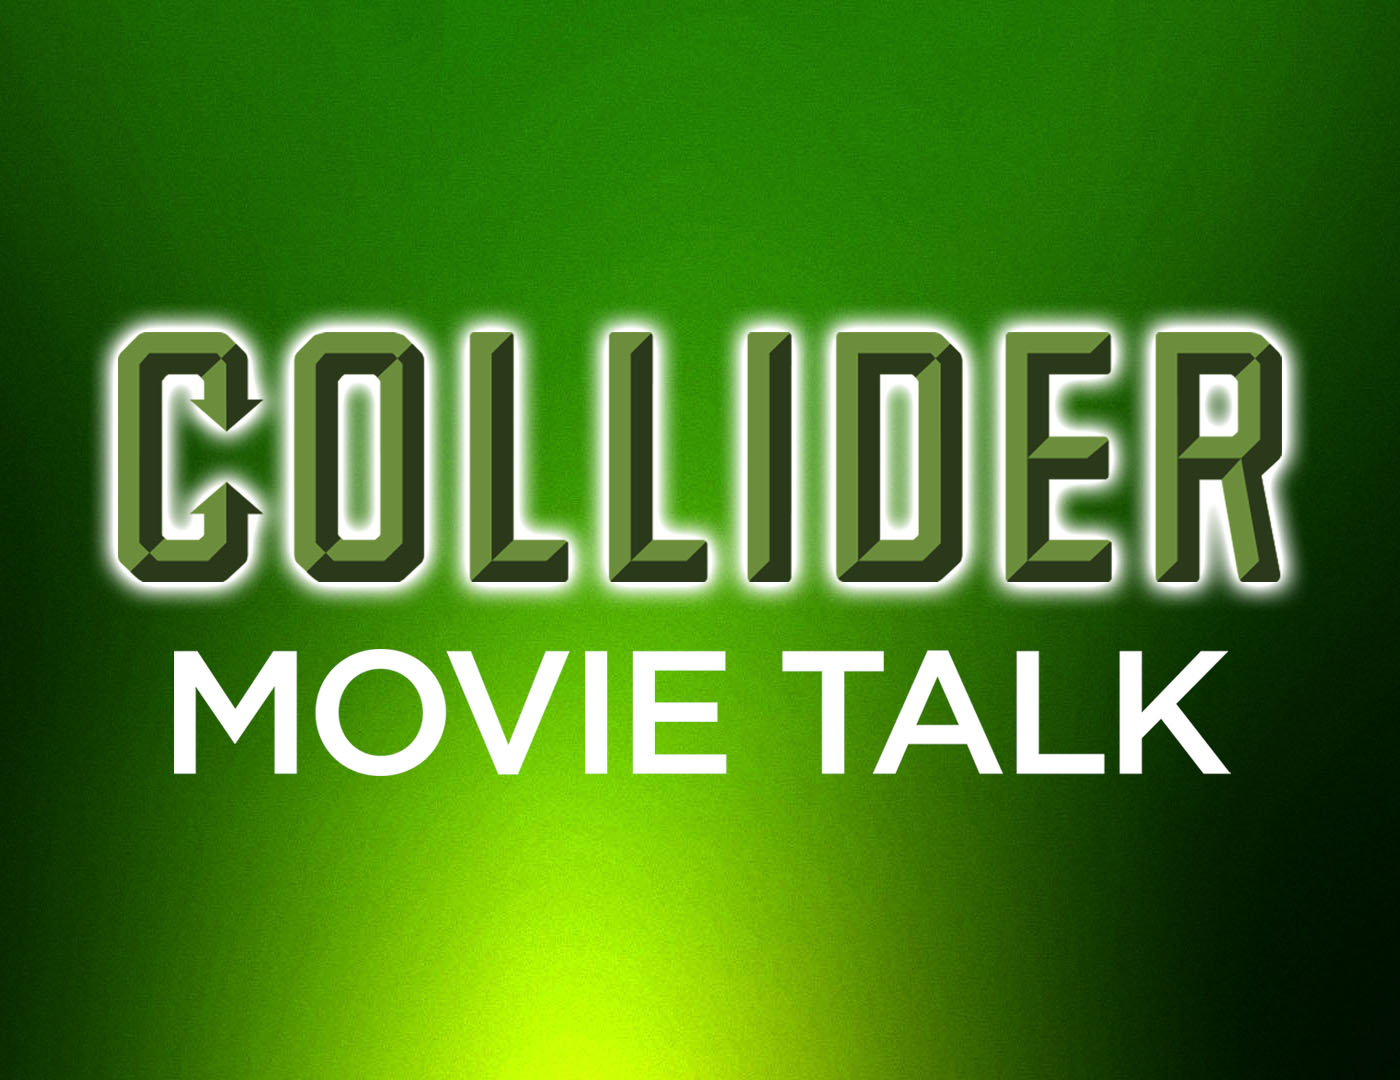 No Teenage Mutant Ninja Turtles 3 Says Producers - Collider Movie Talk